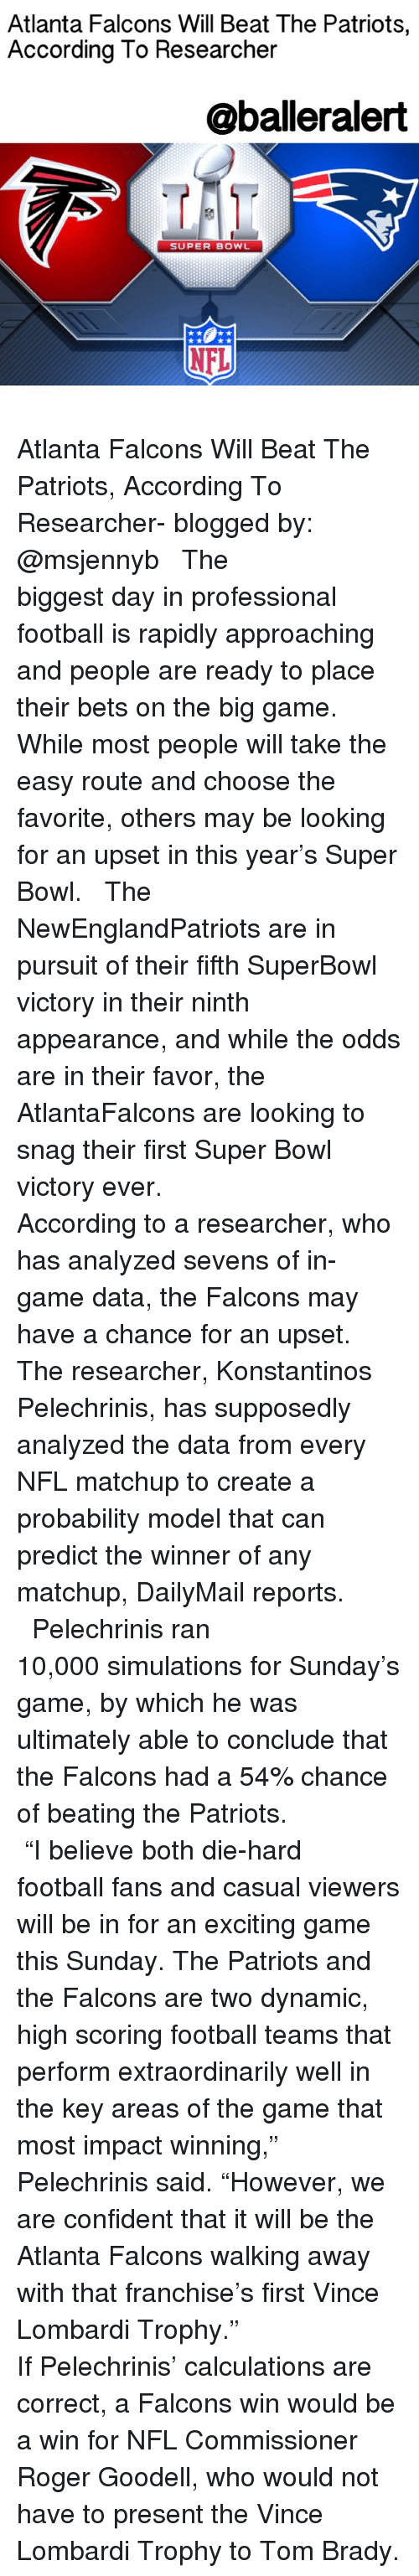 """Atlanta Falcon: Atlanta Falcons Will Beat The Patriots,  According To Researcher  @balleralert  SUPER BOWL  NFL Atlanta Falcons Will Beat The Patriots, According To Researcher- blogged by: @msjennyb ⠀⠀⠀⠀⠀⠀⠀⠀⠀ ⠀⠀⠀⠀⠀⠀⠀⠀⠀ The biggest day in professional football is rapidly approaching and people are ready to place their bets on the big game. While most people will take the easy route and choose the favorite, others may be looking for an upset in this year's Super Bowl. ⠀⠀⠀⠀⠀⠀⠀⠀⠀ ⠀⠀⠀⠀⠀⠀⠀⠀⠀ The NewEnglandPatriots are in pursuit of their fifth SuperBowl victory in their ninth appearance, and while the odds are in their favor, the AtlantaFalcons are looking to snag their first Super Bowl victory ever. ⠀⠀⠀⠀⠀⠀⠀⠀⠀ ⠀⠀⠀⠀⠀⠀⠀⠀⠀ According to a researcher, who has analyzed sevens of in-game data, the Falcons may have a chance for an upset. The researcher, Konstantinos Pelechrinis, has supposedly analyzed the data from every NFL matchup to create a probability model that can predict the winner of any matchup, DailyMail reports. ⠀⠀⠀⠀⠀⠀⠀⠀⠀ ⠀⠀⠀⠀⠀⠀⠀⠀⠀ Pelechrinis ran 10,000 simulations for Sunday's game, by which he was ultimately able to conclude that the Falcons had a 54% chance of beating the Patriots. ⠀⠀⠀⠀⠀⠀⠀⠀⠀ ⠀⠀⠀⠀⠀⠀⠀⠀⠀ """"I believe both die-hard football fans and casual viewers will be in for an exciting game this Sunday. The Patriots and the Falcons are two dynamic, high scoring football teams that perform extraordinarily well in the key areas of the game that most impact winning,"""" Pelechrinis said. """"However, we are confident that it will be the Atlanta Falcons walking away with that franchise's first Vince Lombardi Trophy."""" ⠀⠀⠀⠀⠀⠀⠀⠀⠀ ⠀⠀⠀⠀⠀⠀⠀⠀⠀ If Pelechrinis' calculations are correct, a Falcons win would be a win for NFL Commissioner Roger Goodell, who would not have to present the Vince Lombardi Trophy to Tom Brady."""